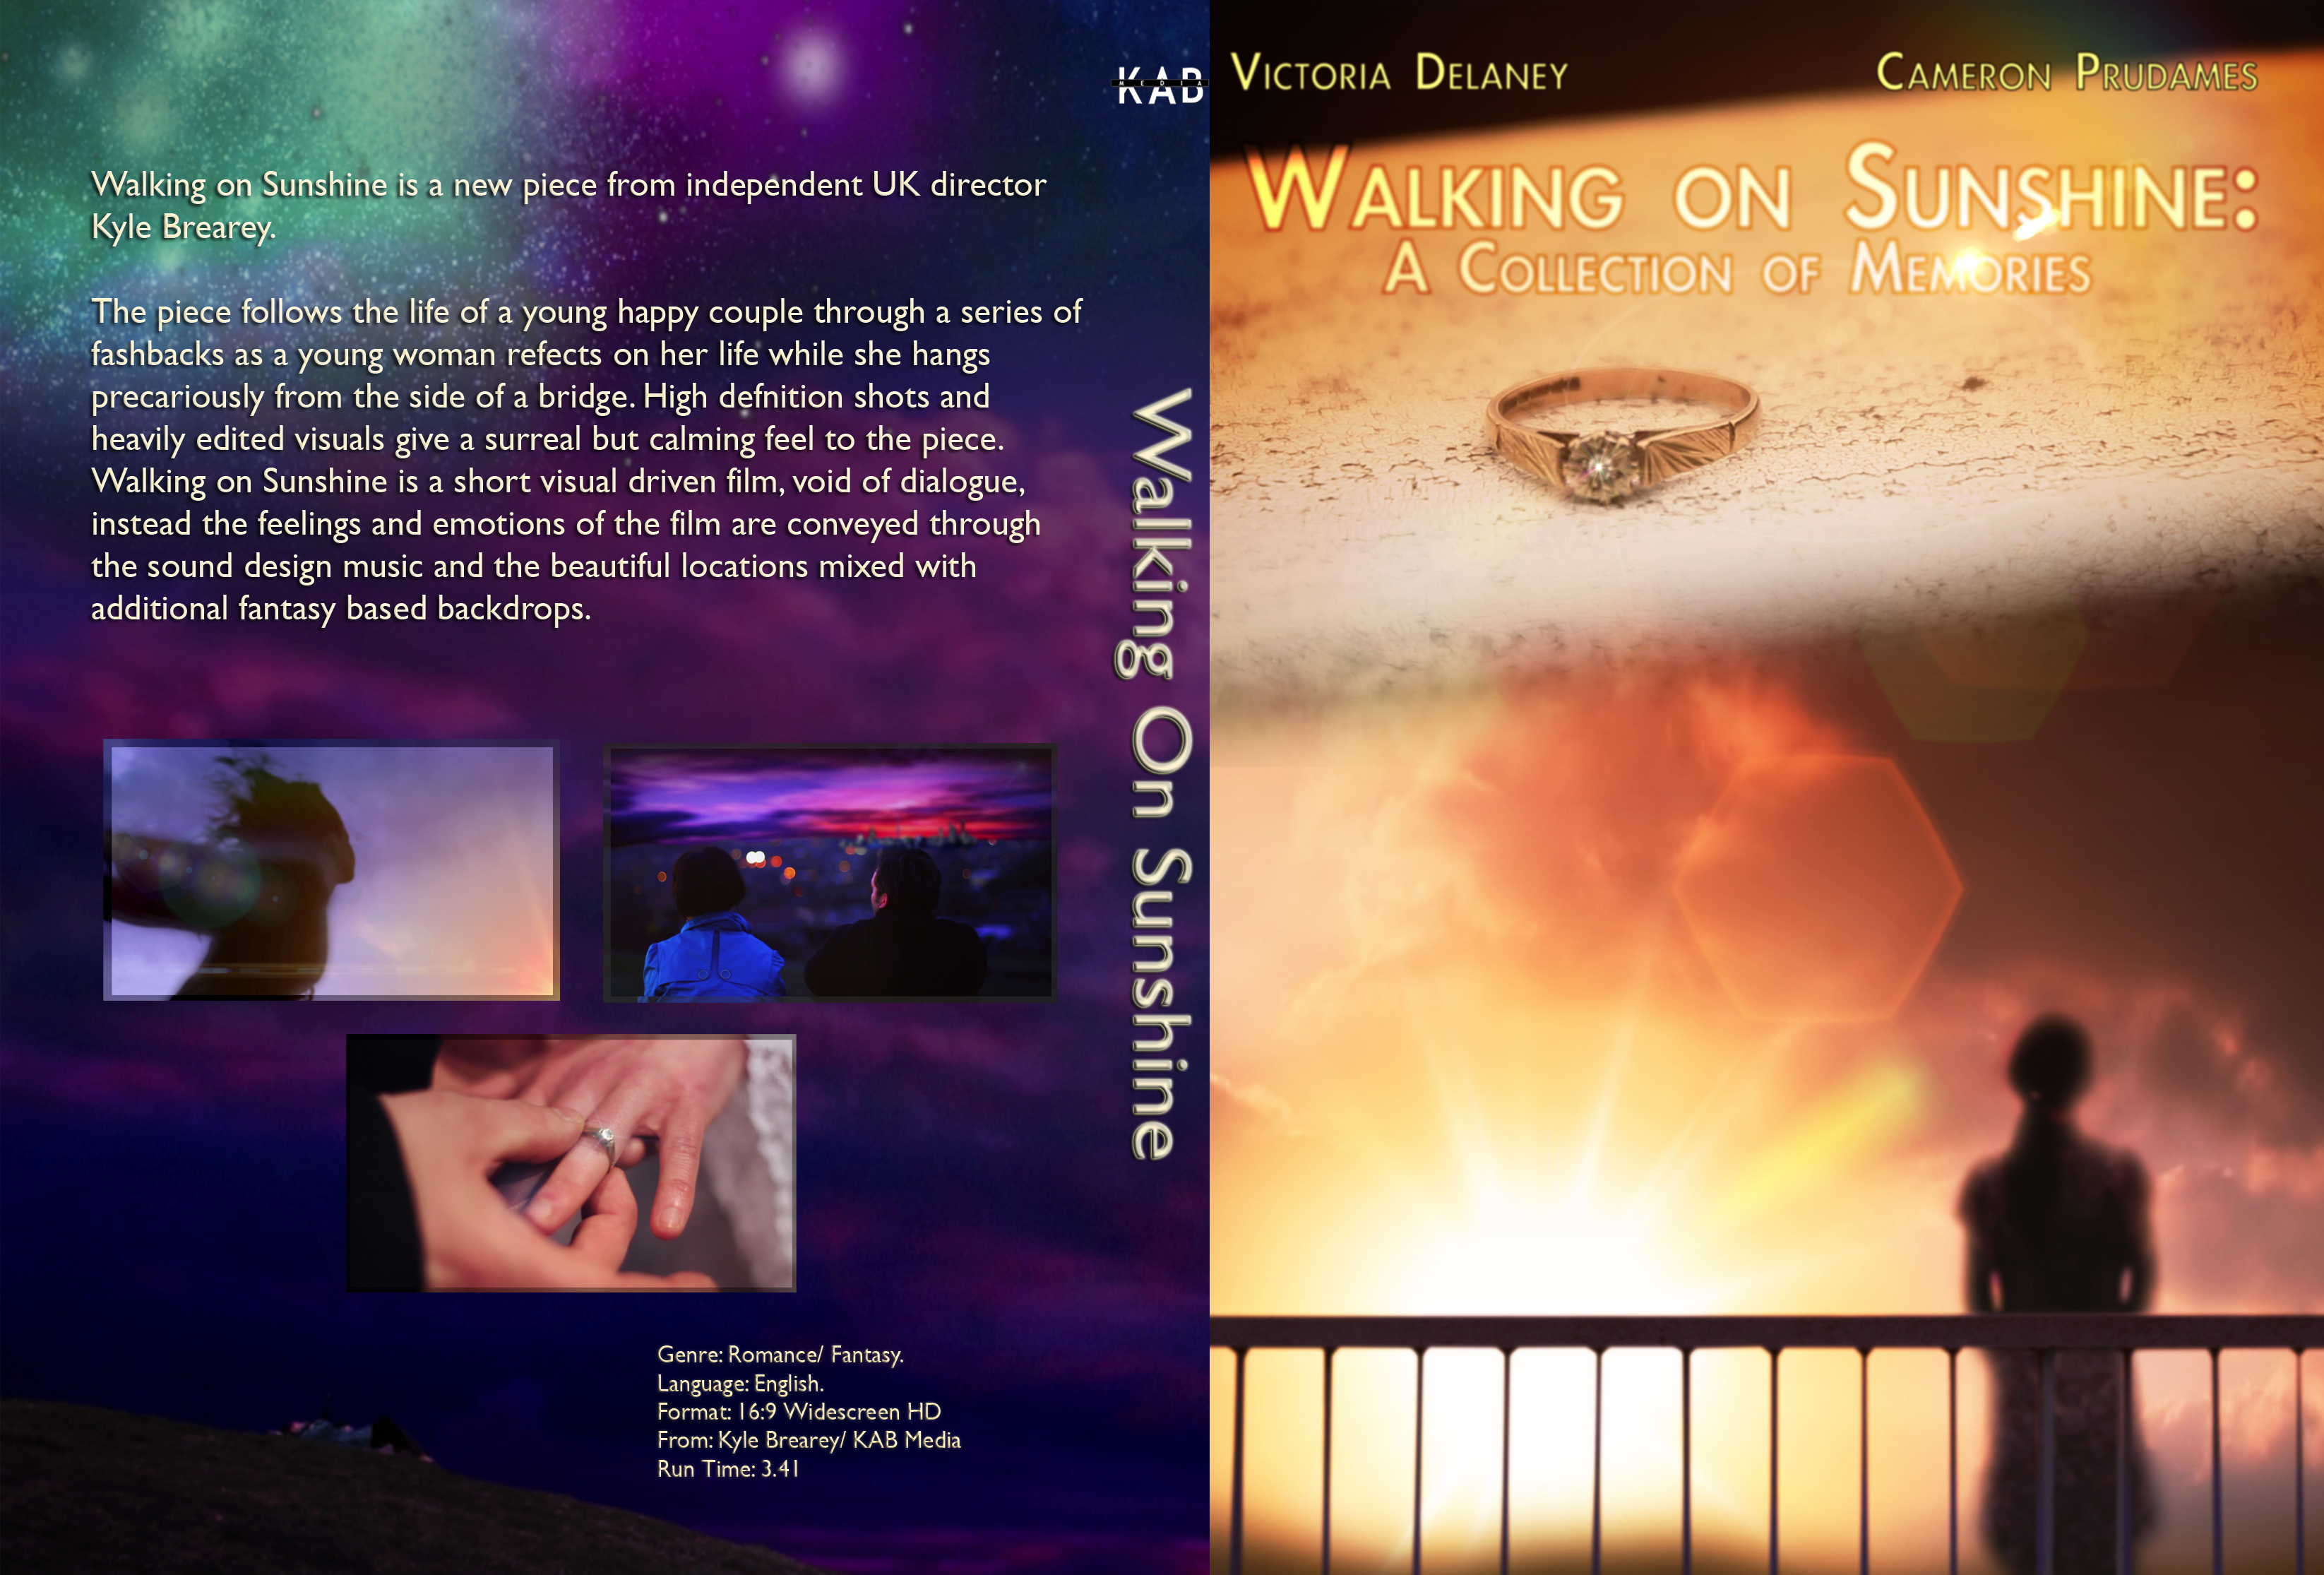 WOS_dvd_cover_art